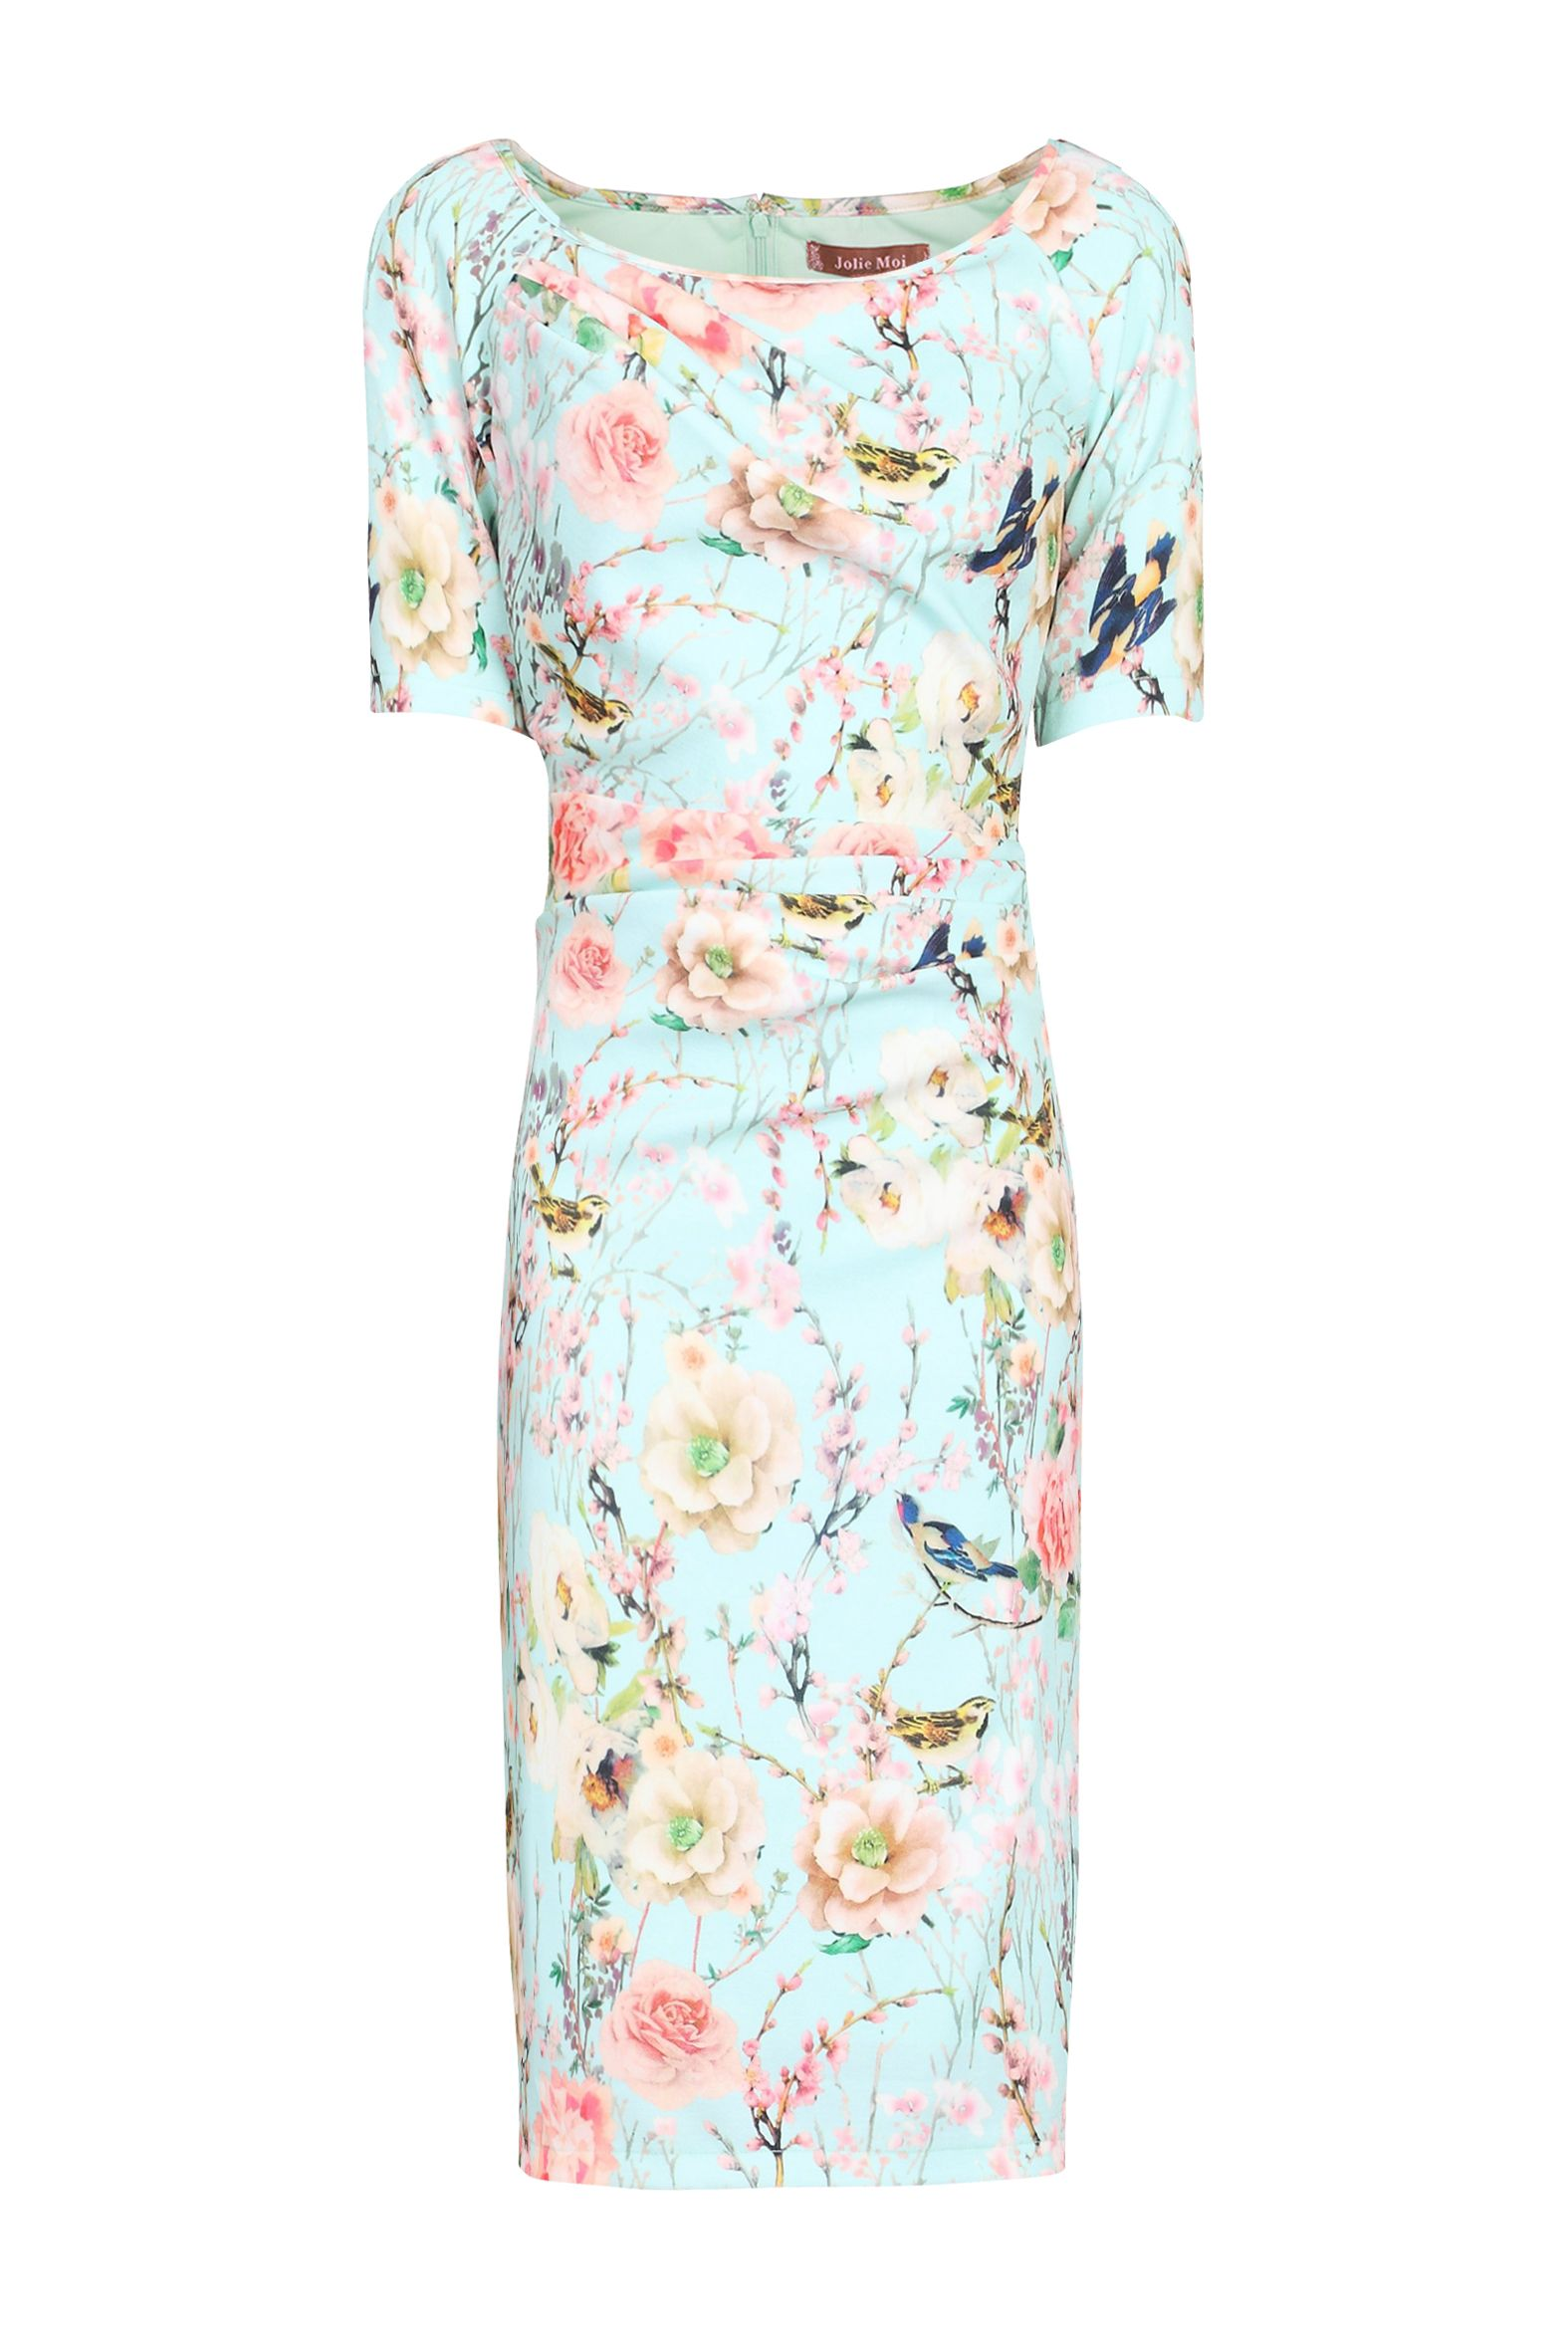 Jolie Moi Floral Print Half Sleeve Dress, Aqua